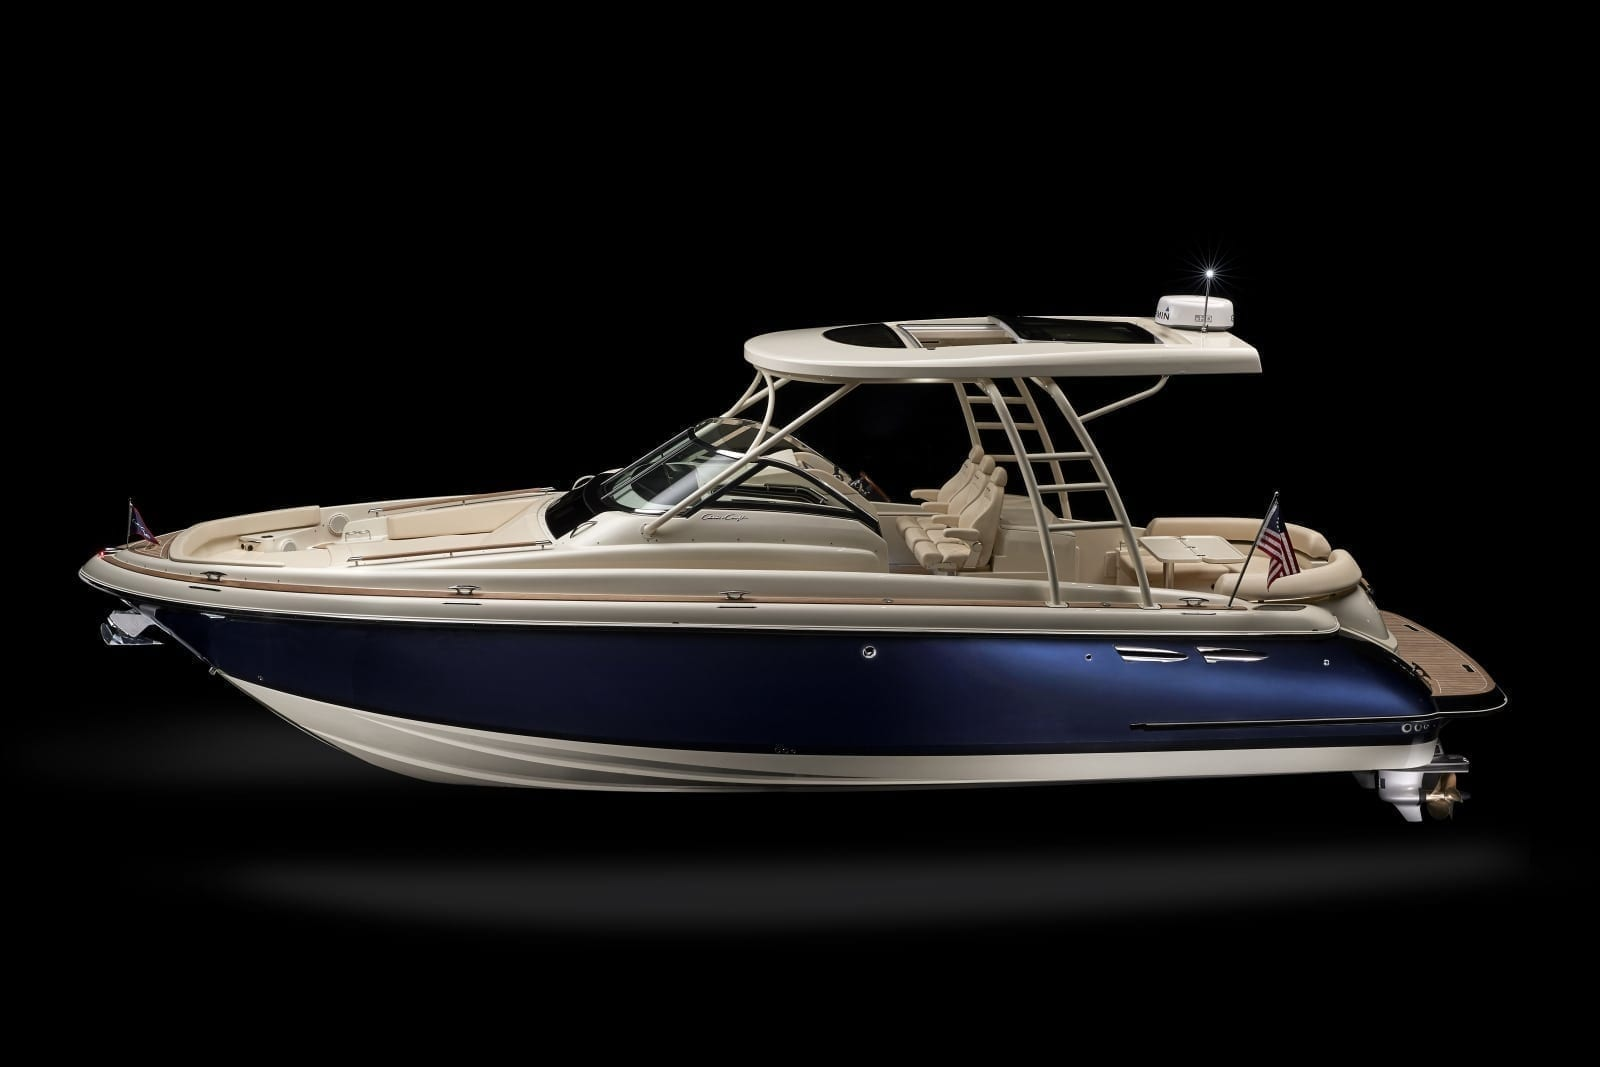 Chris Craft Launch 38 Side Profile View